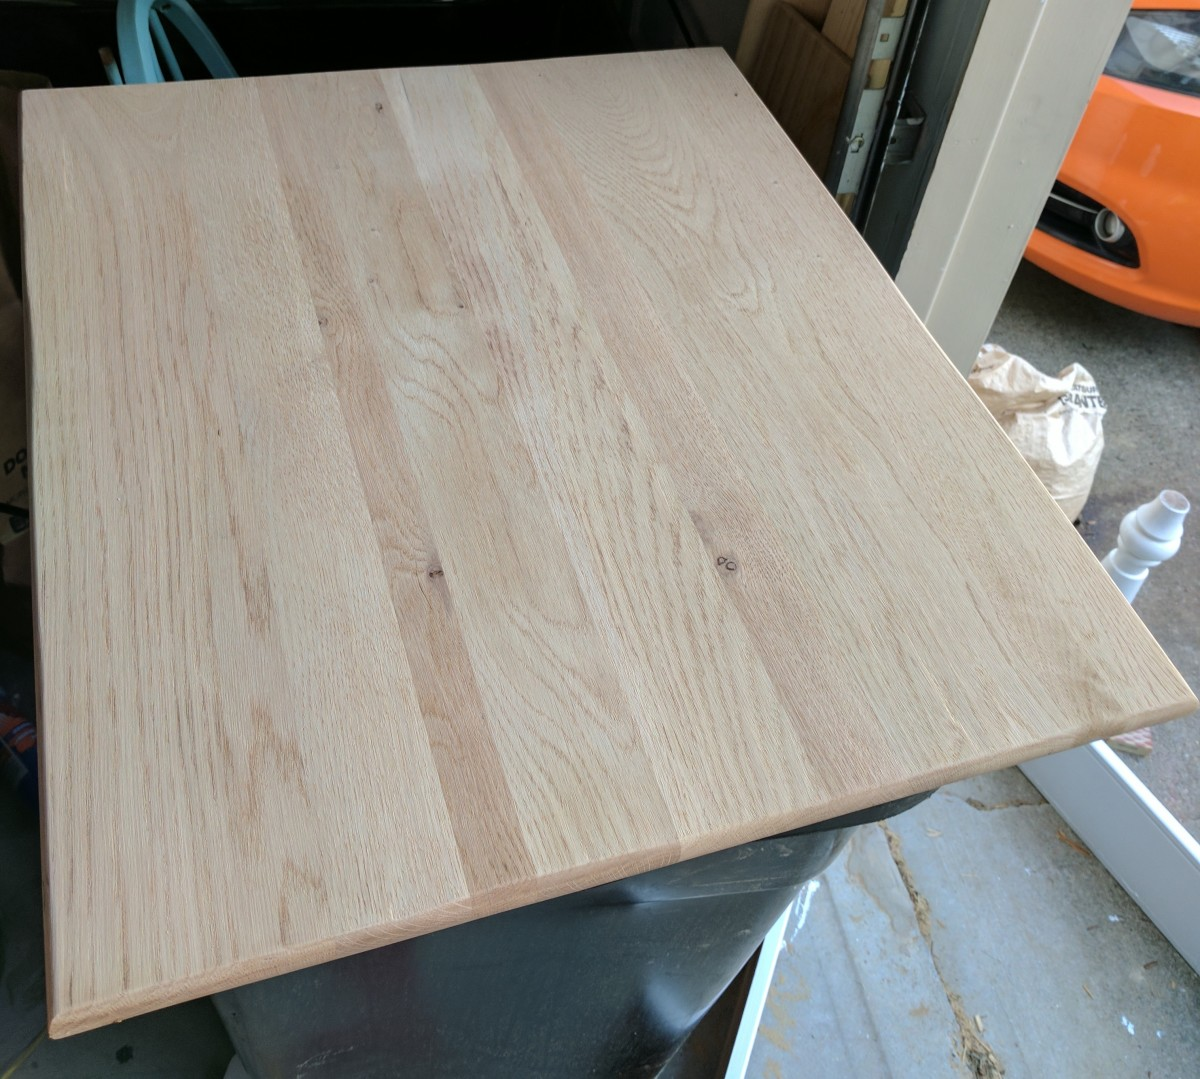 This is the table top after I belt-sanded off the old stain and then used a palm sander with a fine grit sandpaper to smooth it out before staining.